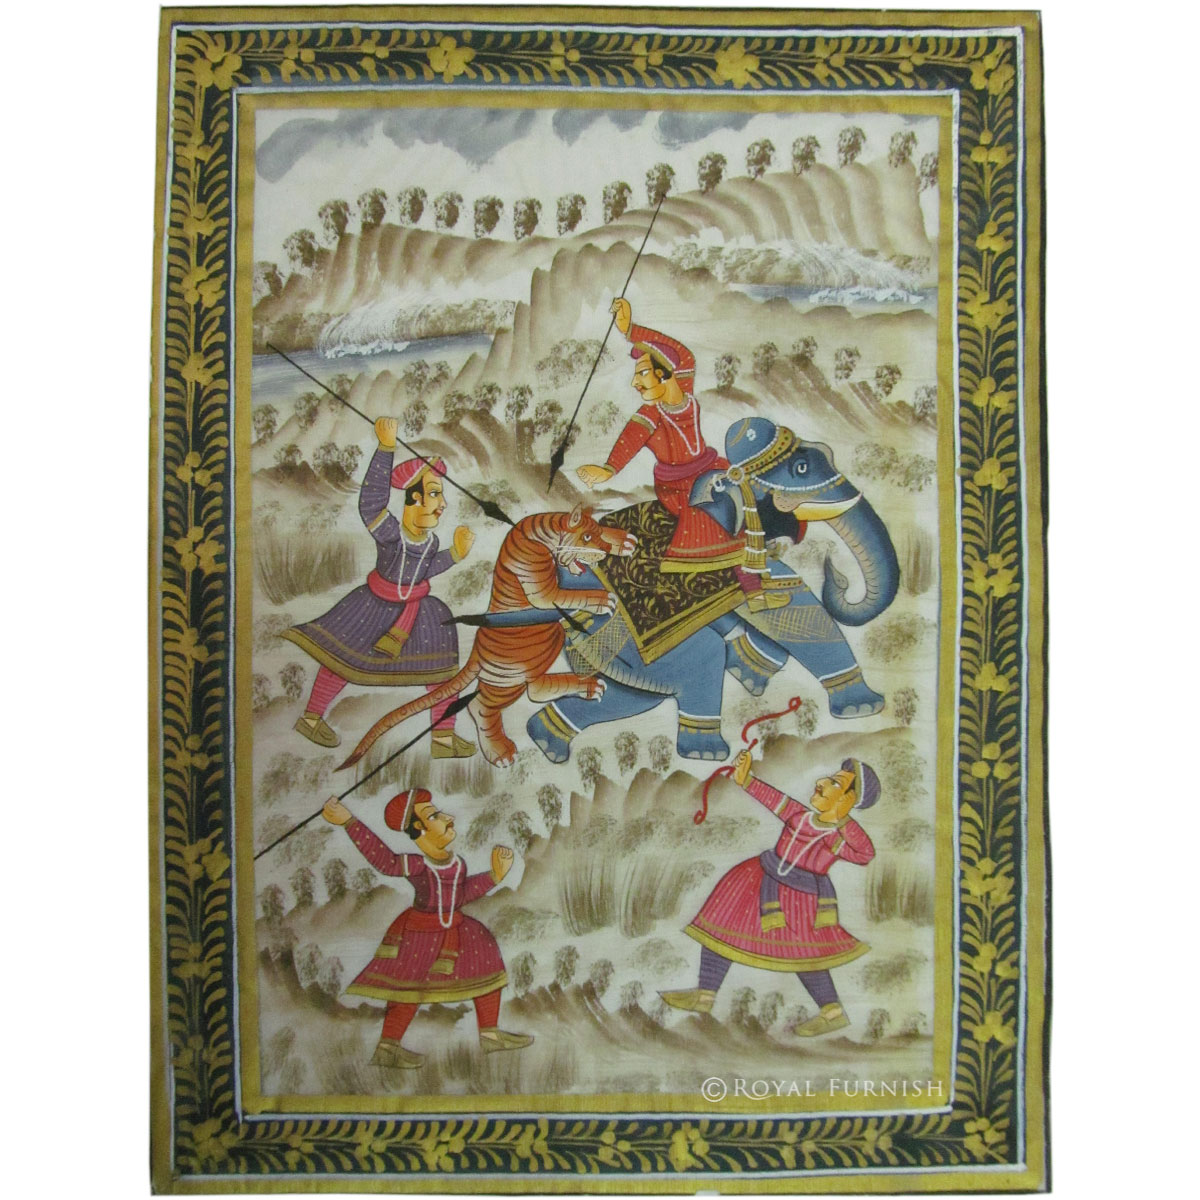 Home » Home Decor » Indian Miniatures Paintings » Rajasthani Mughal ...